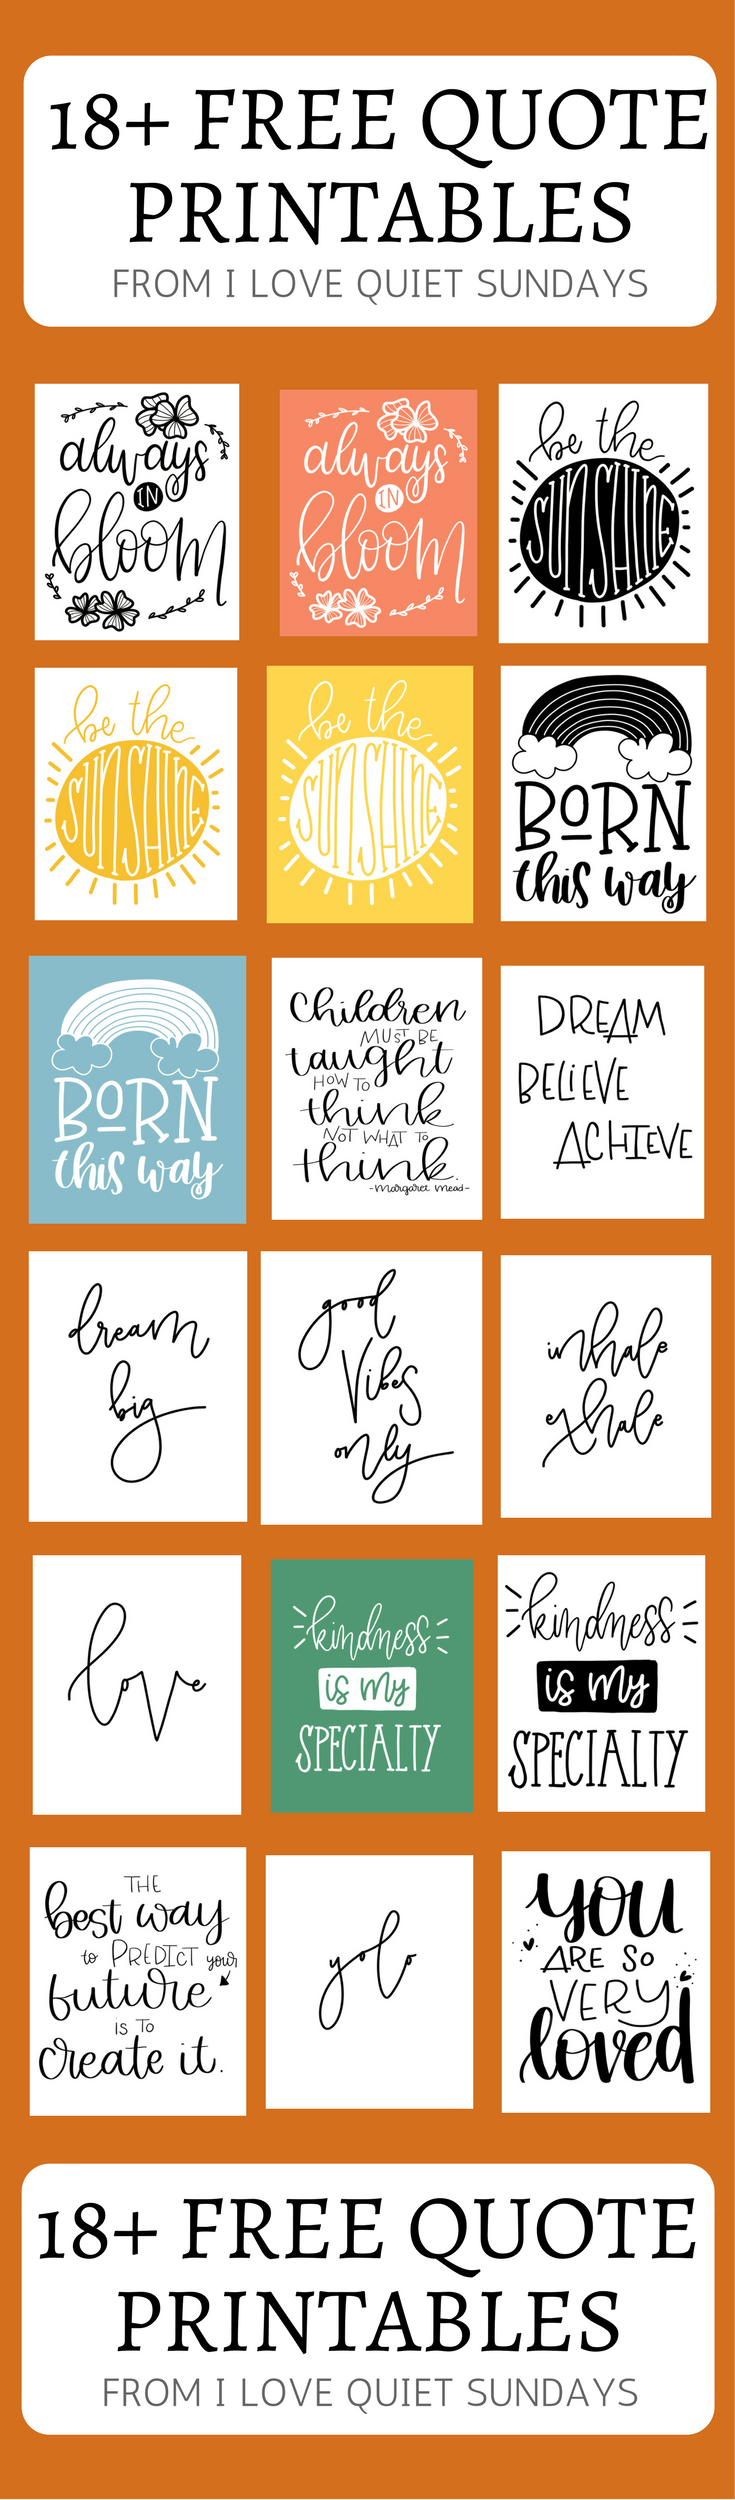 Free Art Friday 18 Printable Quotes April 14th Get Your Butt